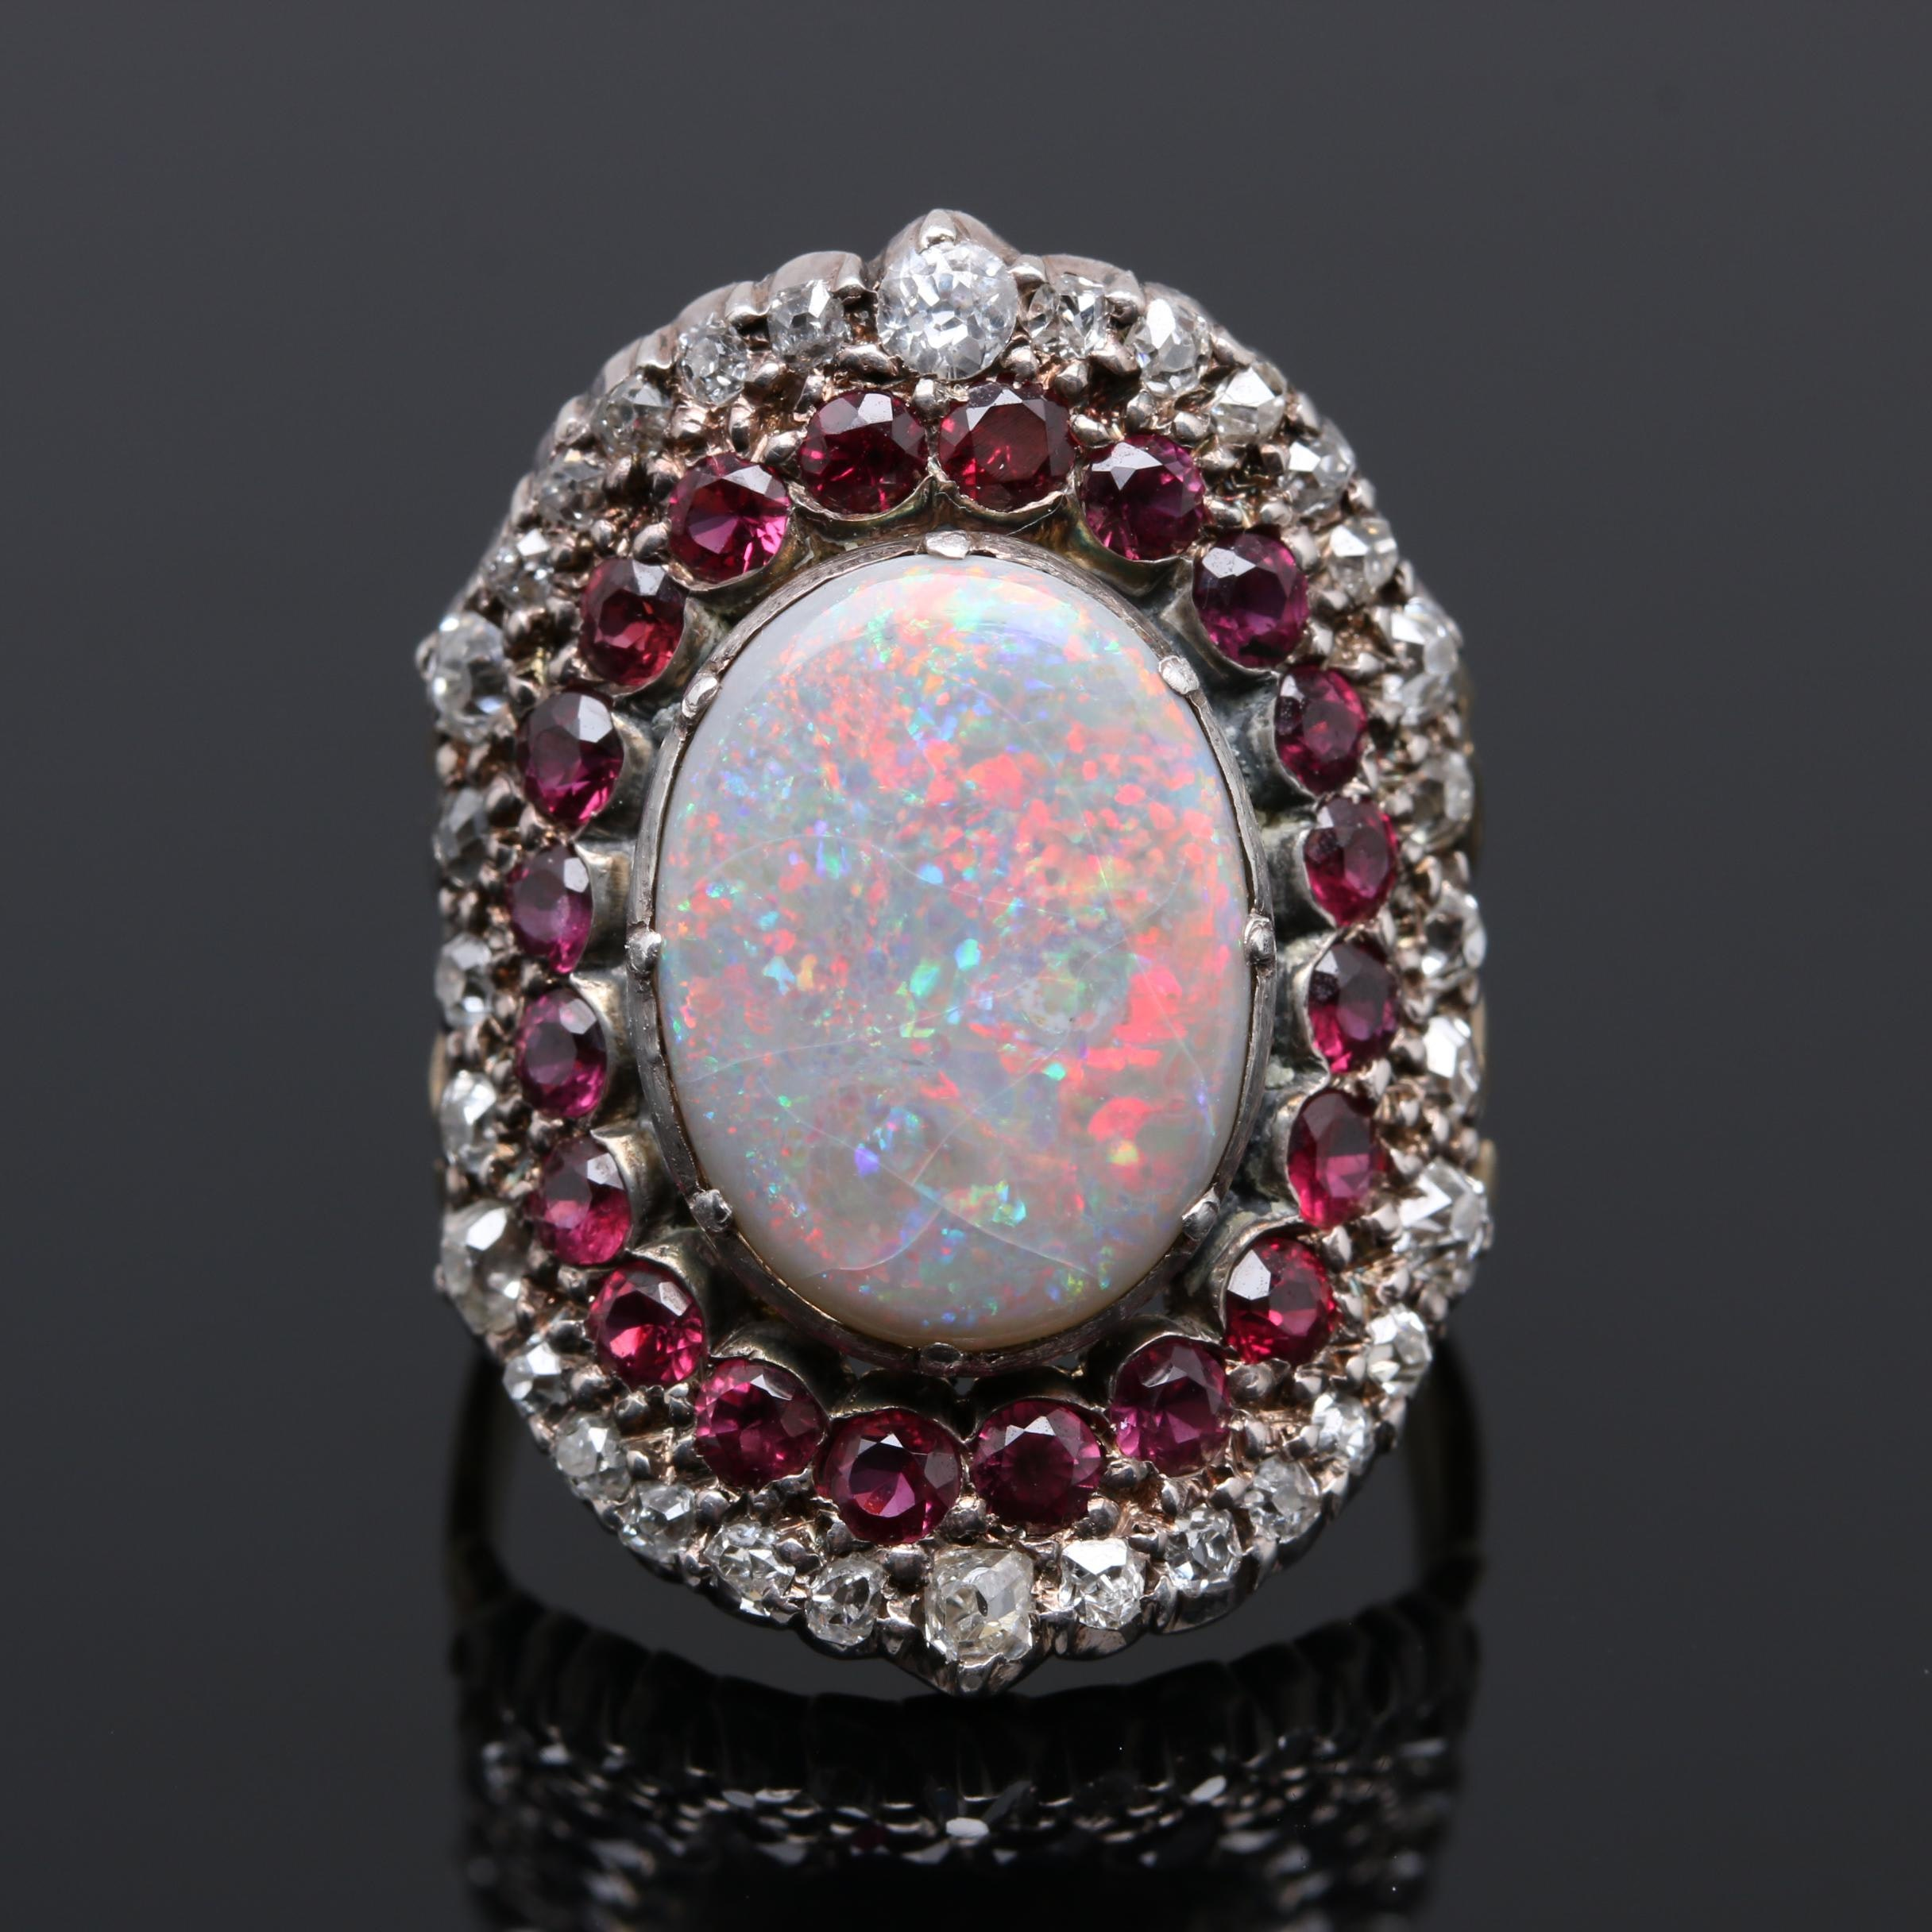 10K Yellow Gold and Sterling Silver Opal, Ruby, and Diamond Ring